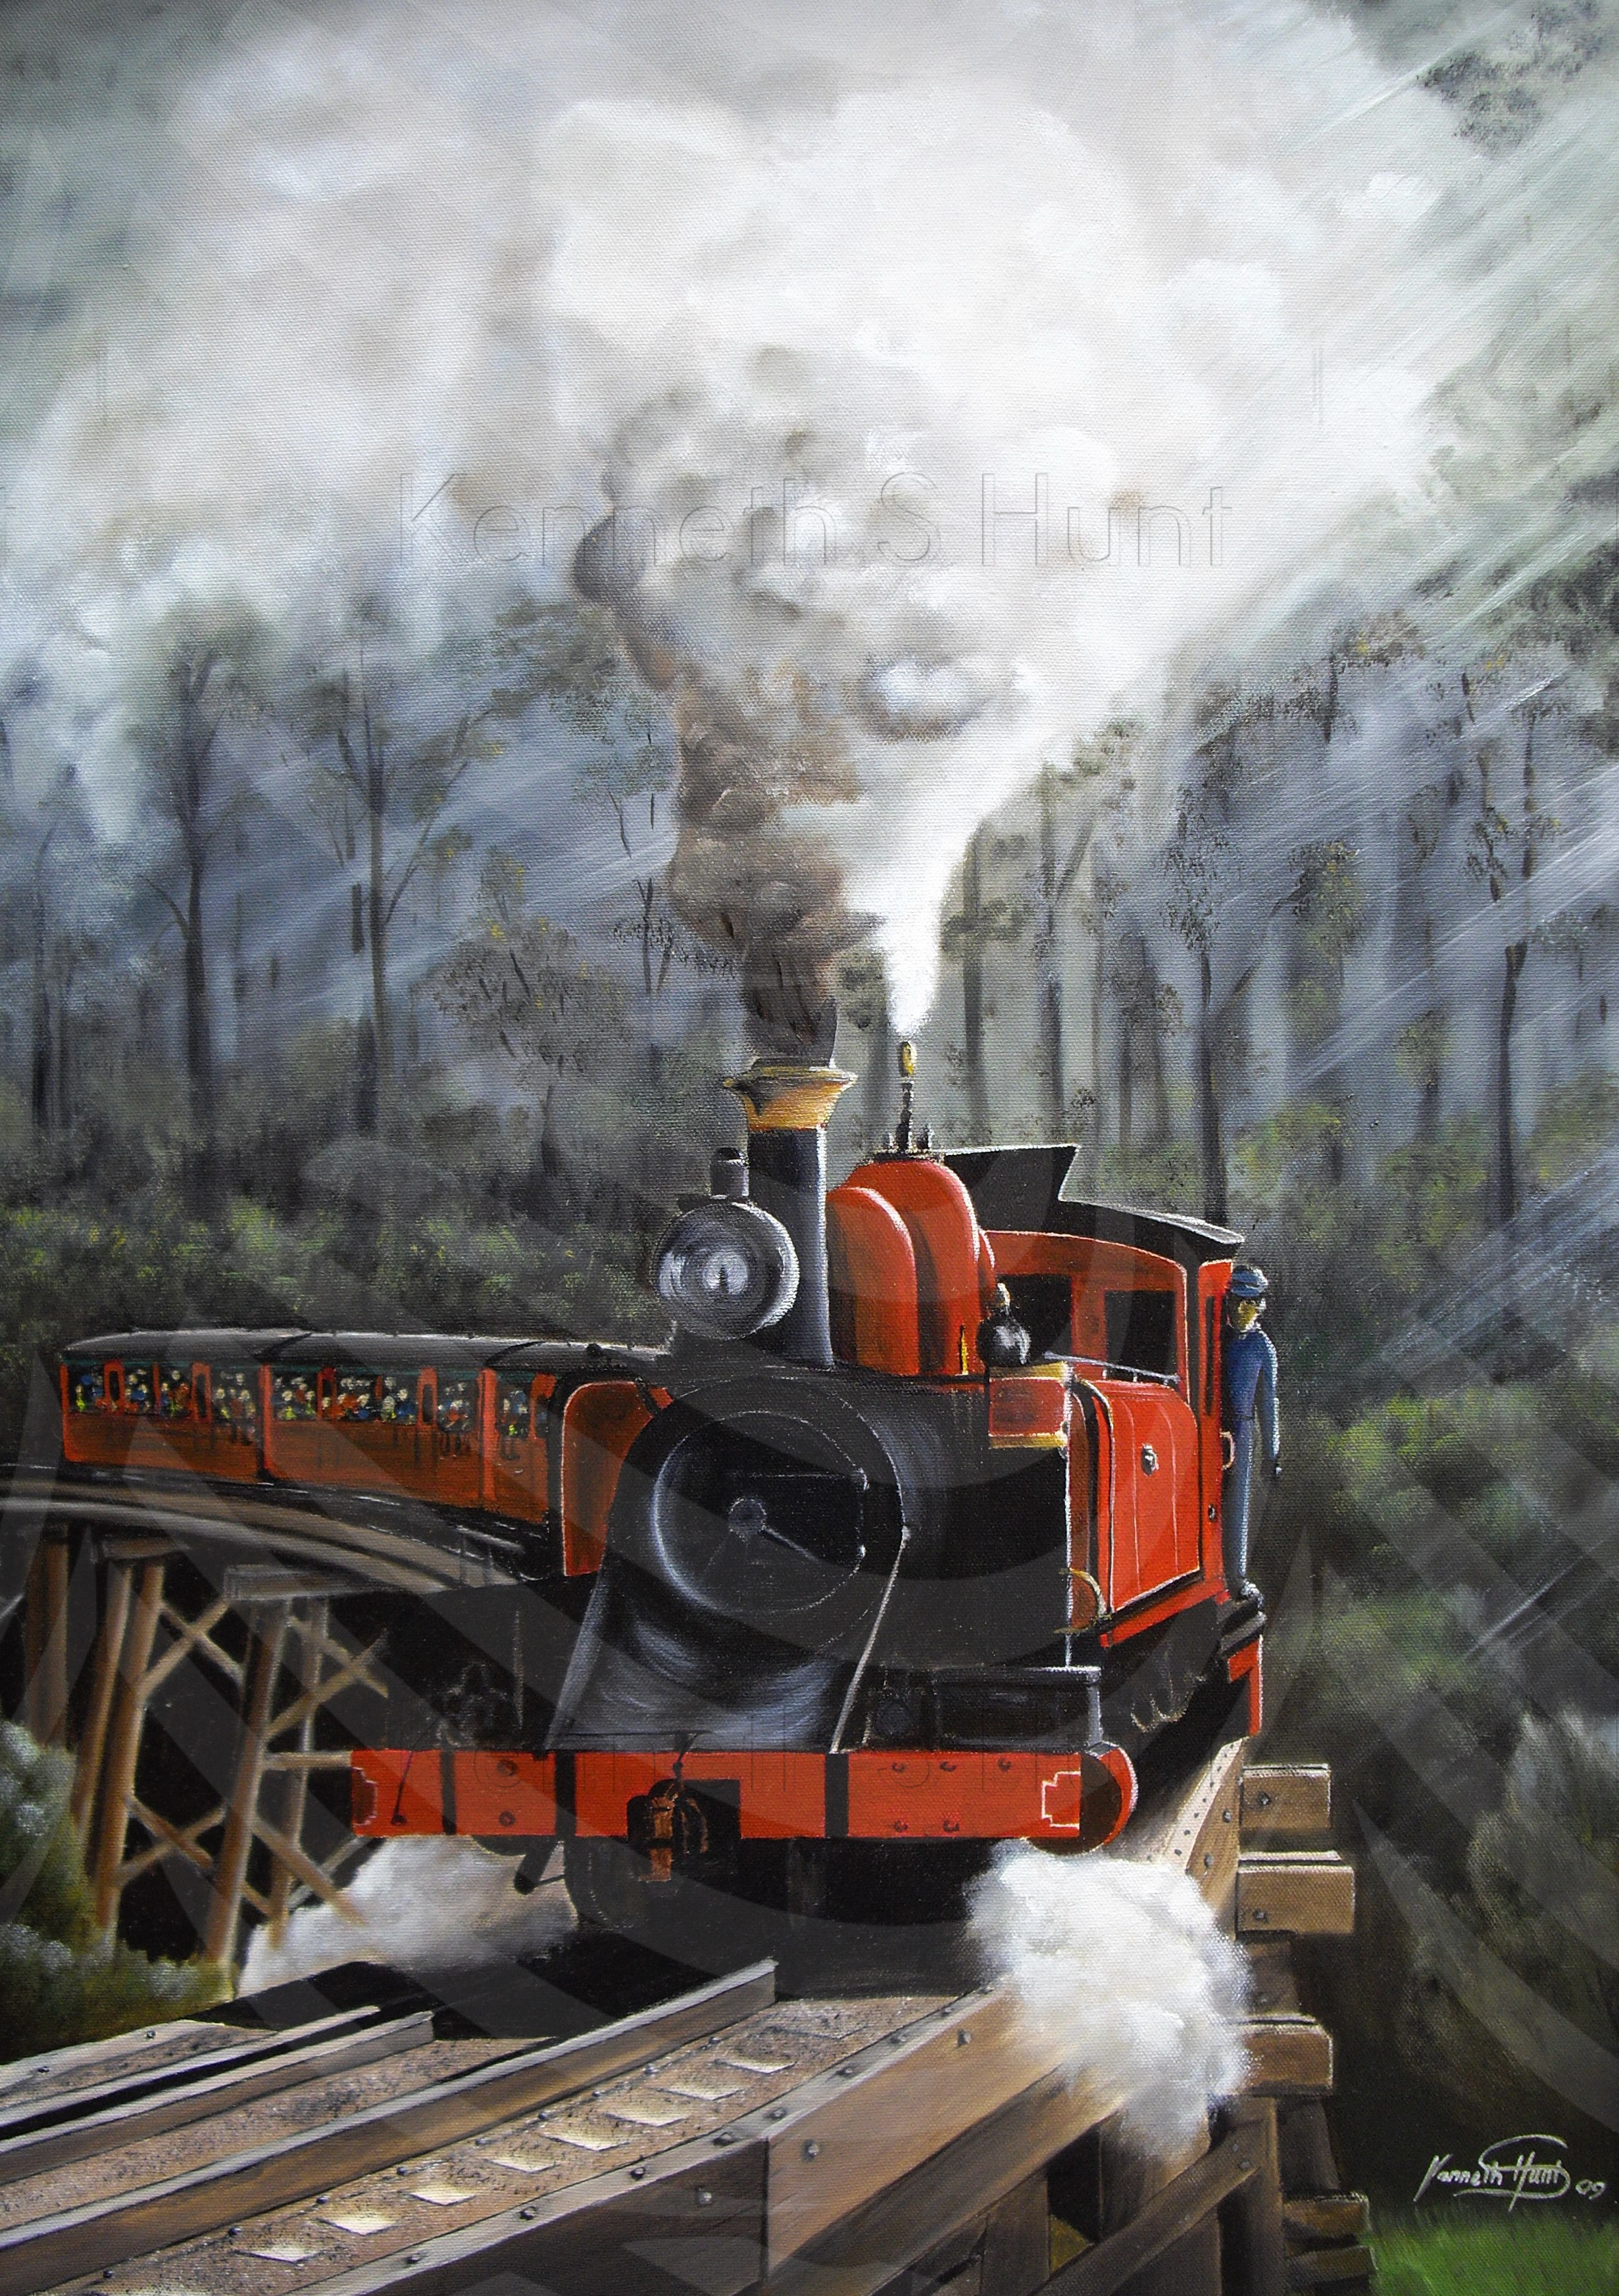 8. Puffing Billy